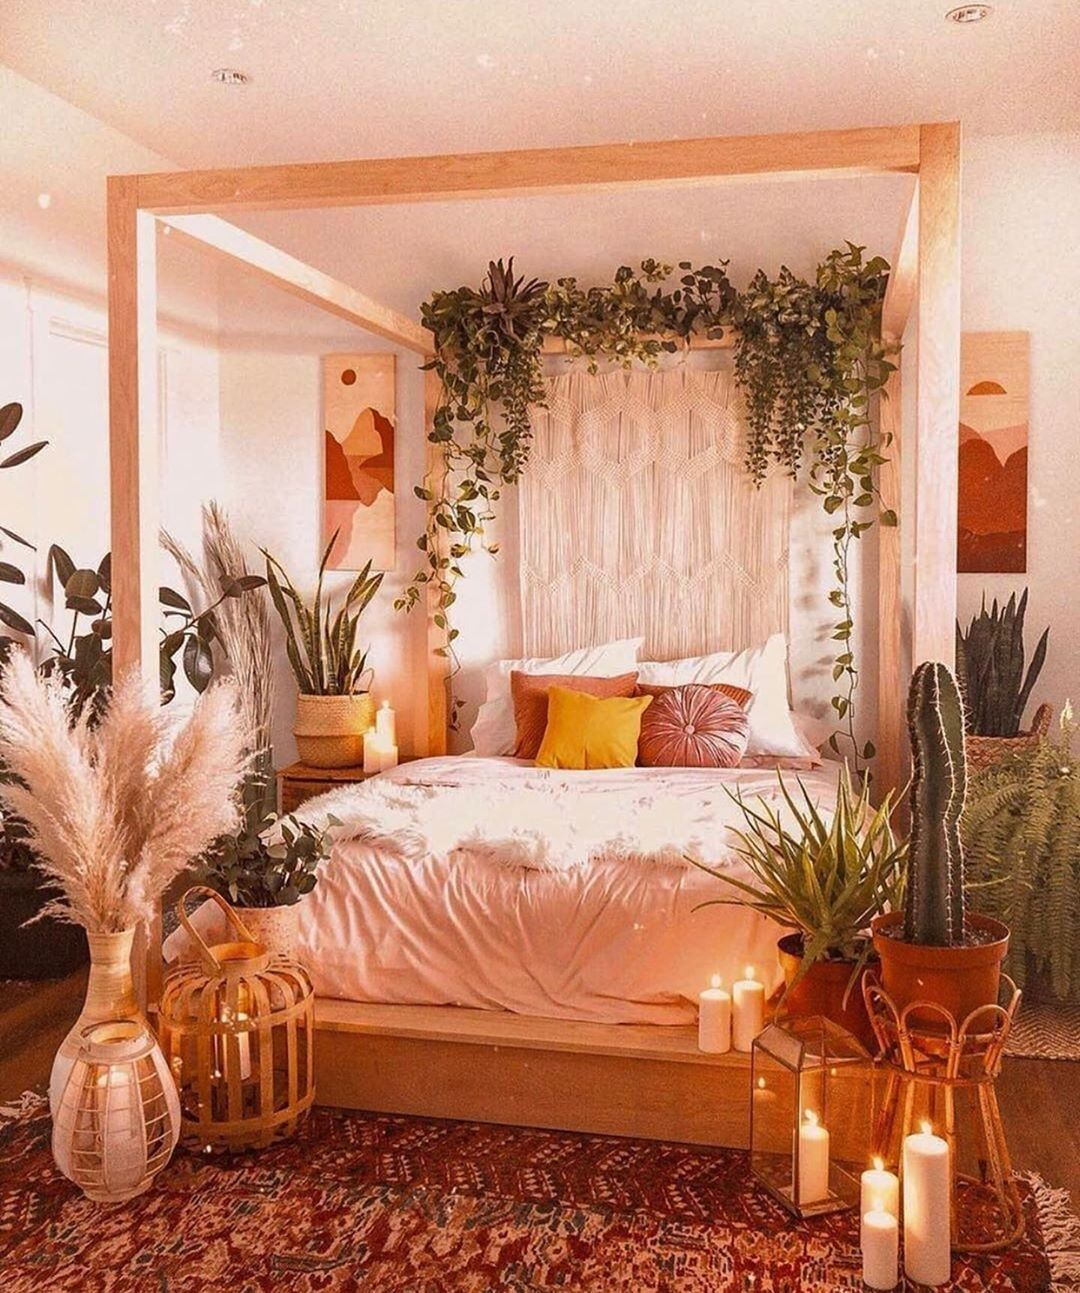 Bohemian Bedroom Design with Tropical Style